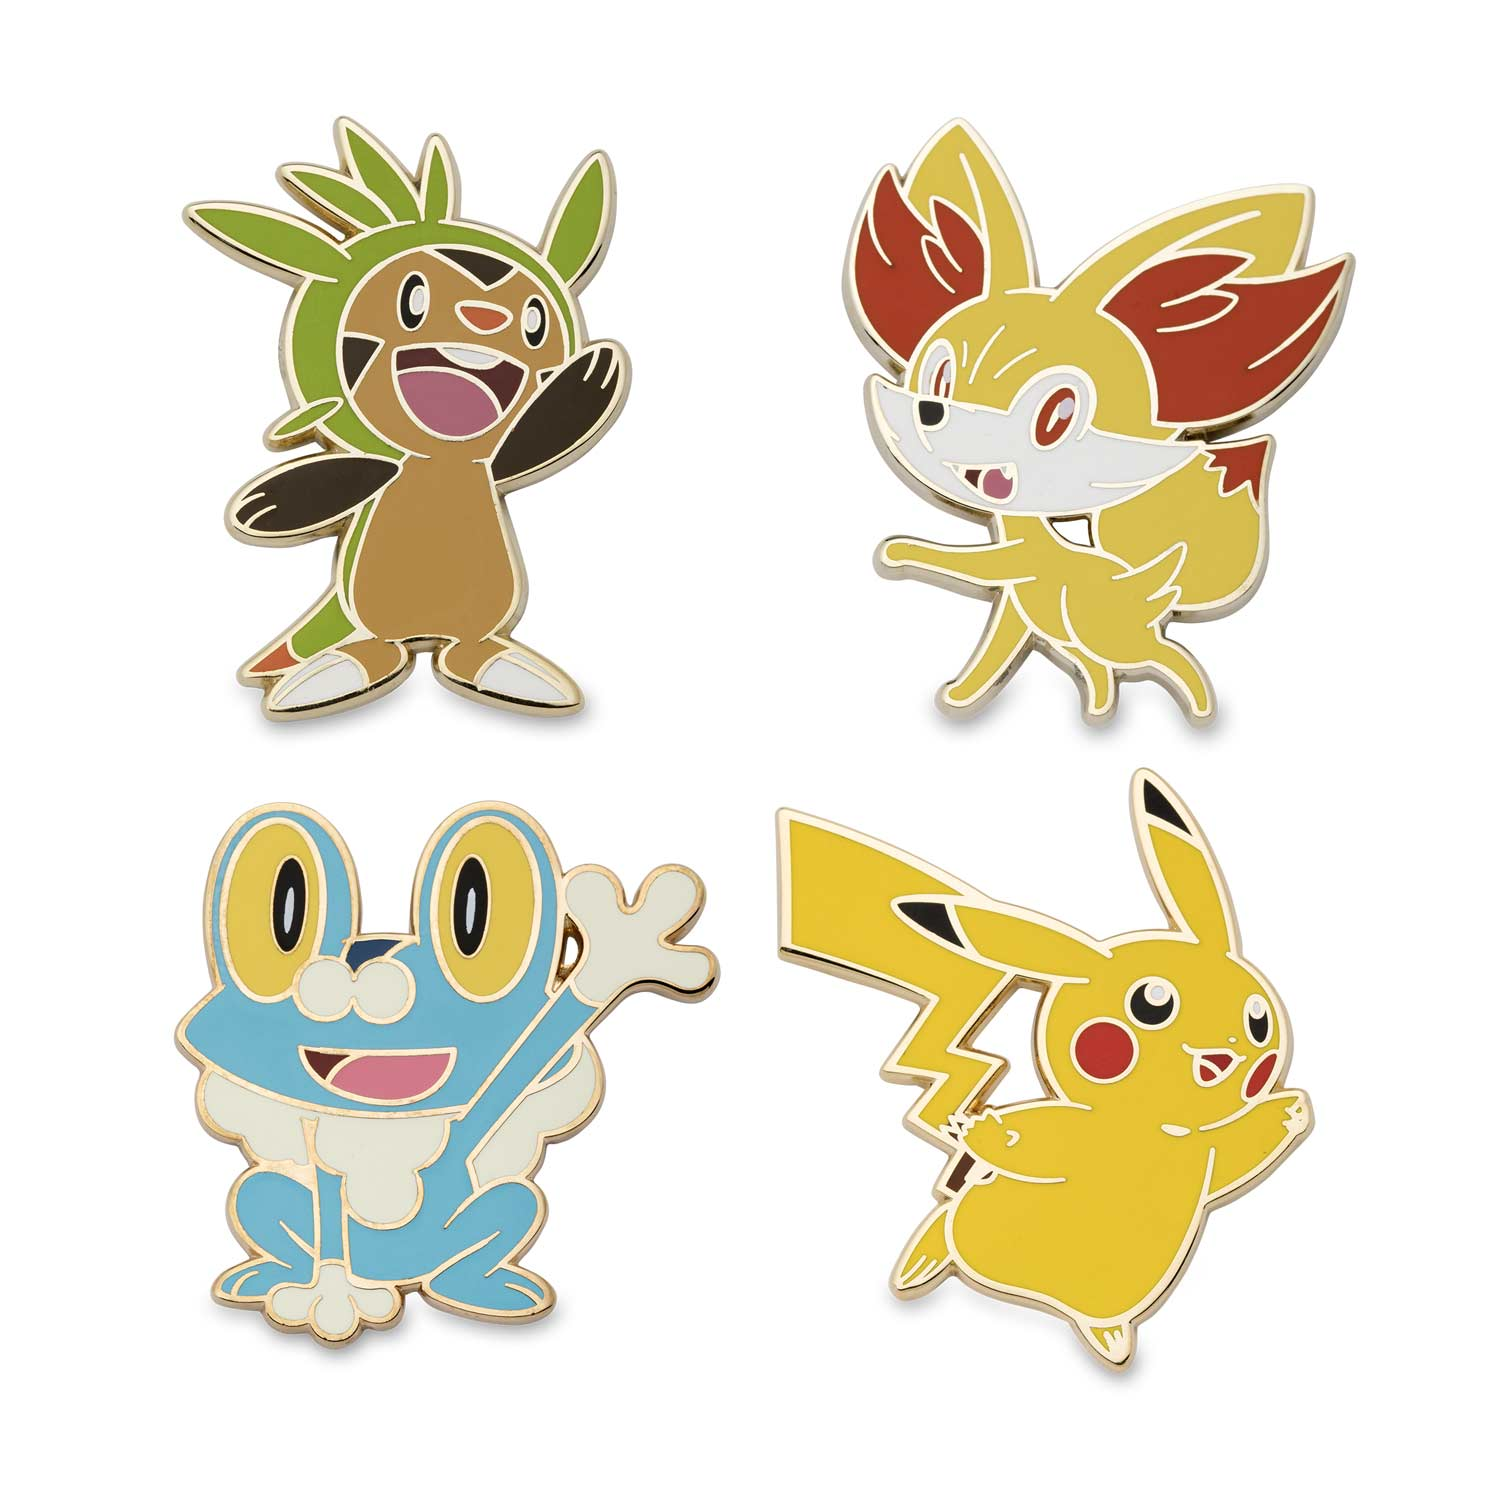 image for chespin fennekin froakie and pikachu pokmon pins 4 pack _5_3074457345618259663_3074457345618262055_3074457345618268804